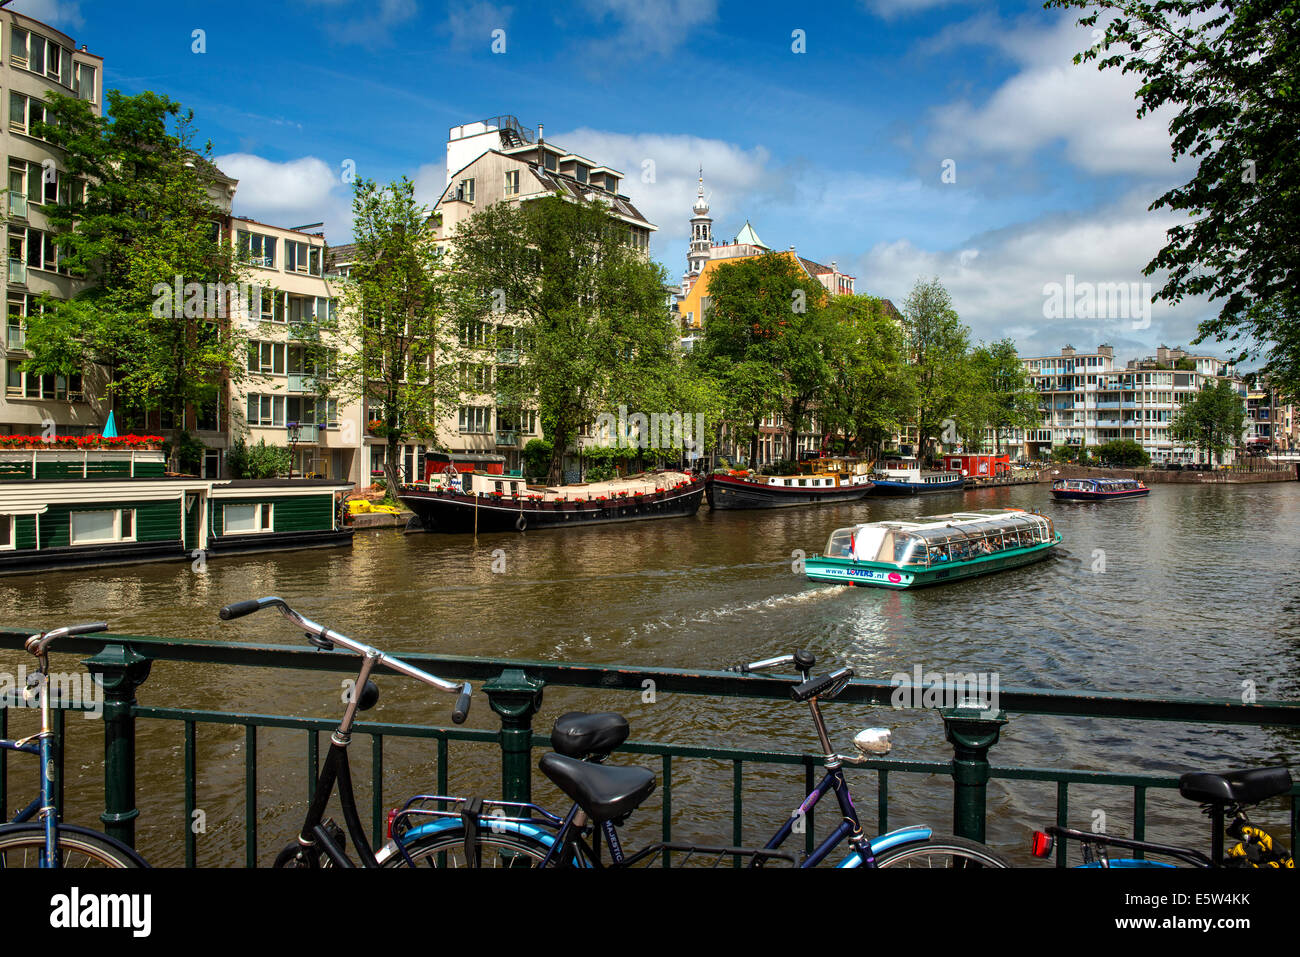 Prinsengracht Canal, Amsterdam, Holland, netherlands - Stock Image